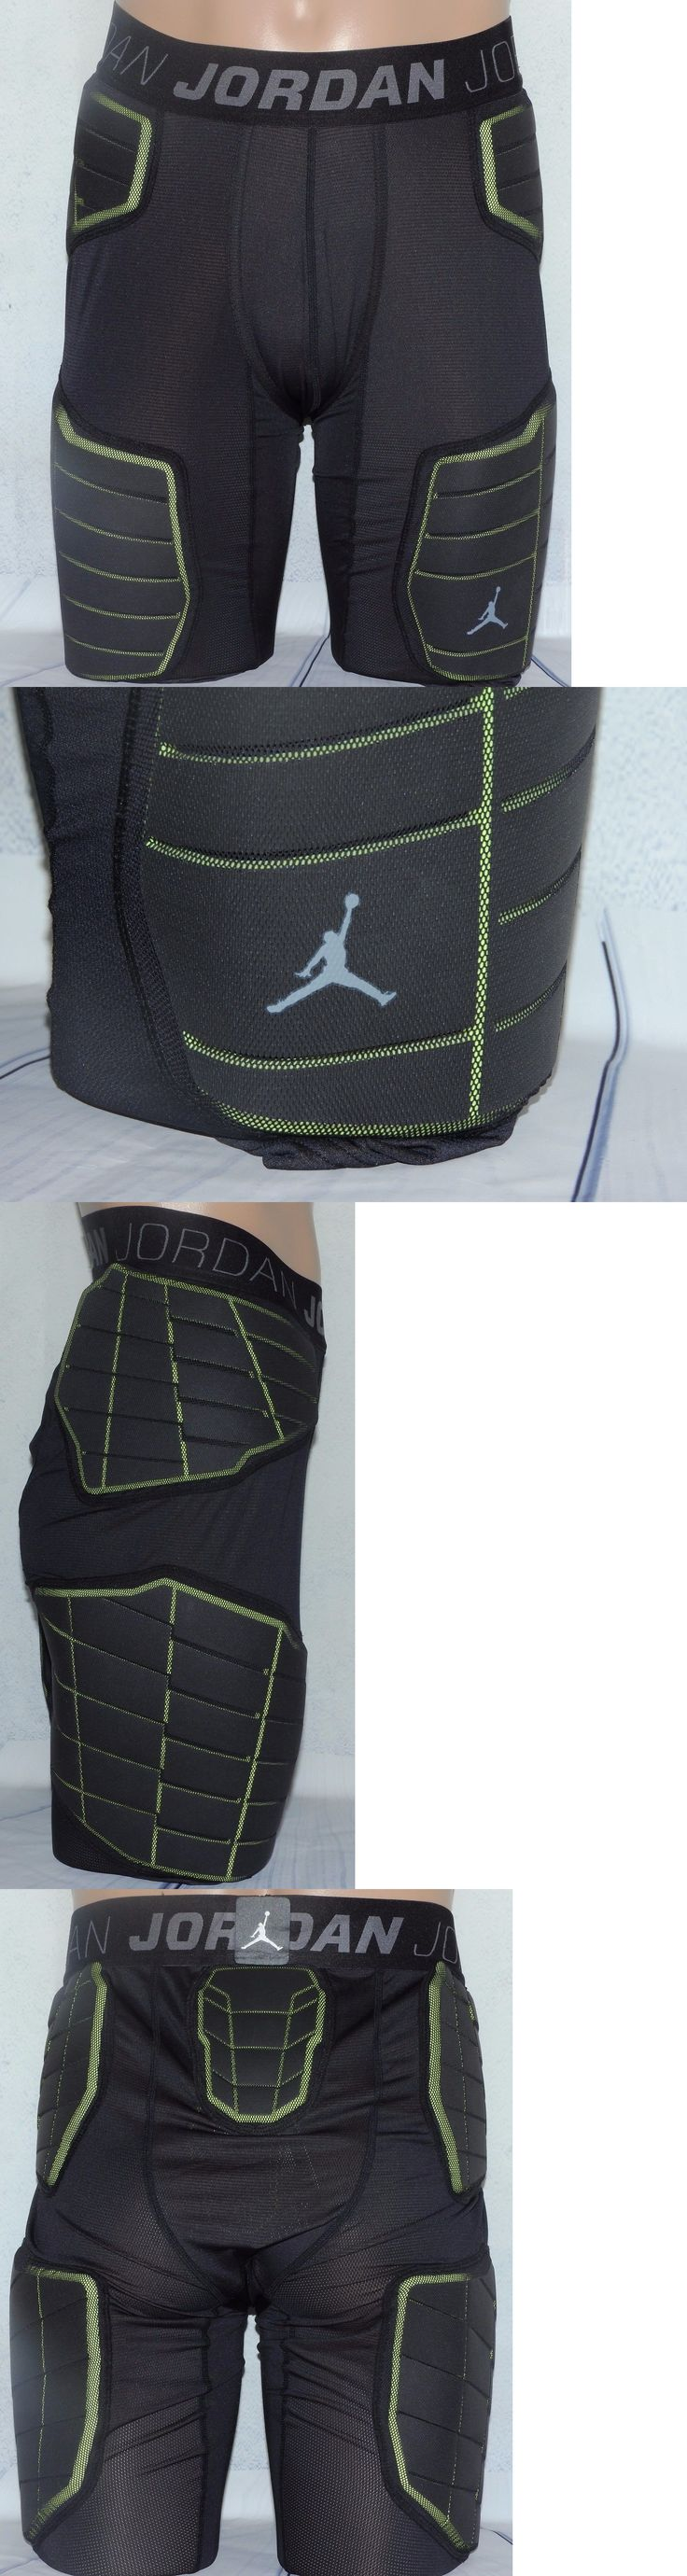 Basketball: Nike Pro Combat Air Jordan Basketball Padded Compression Pants,Black,Mens, Xl BUY IT NOW ONLY: $52.99